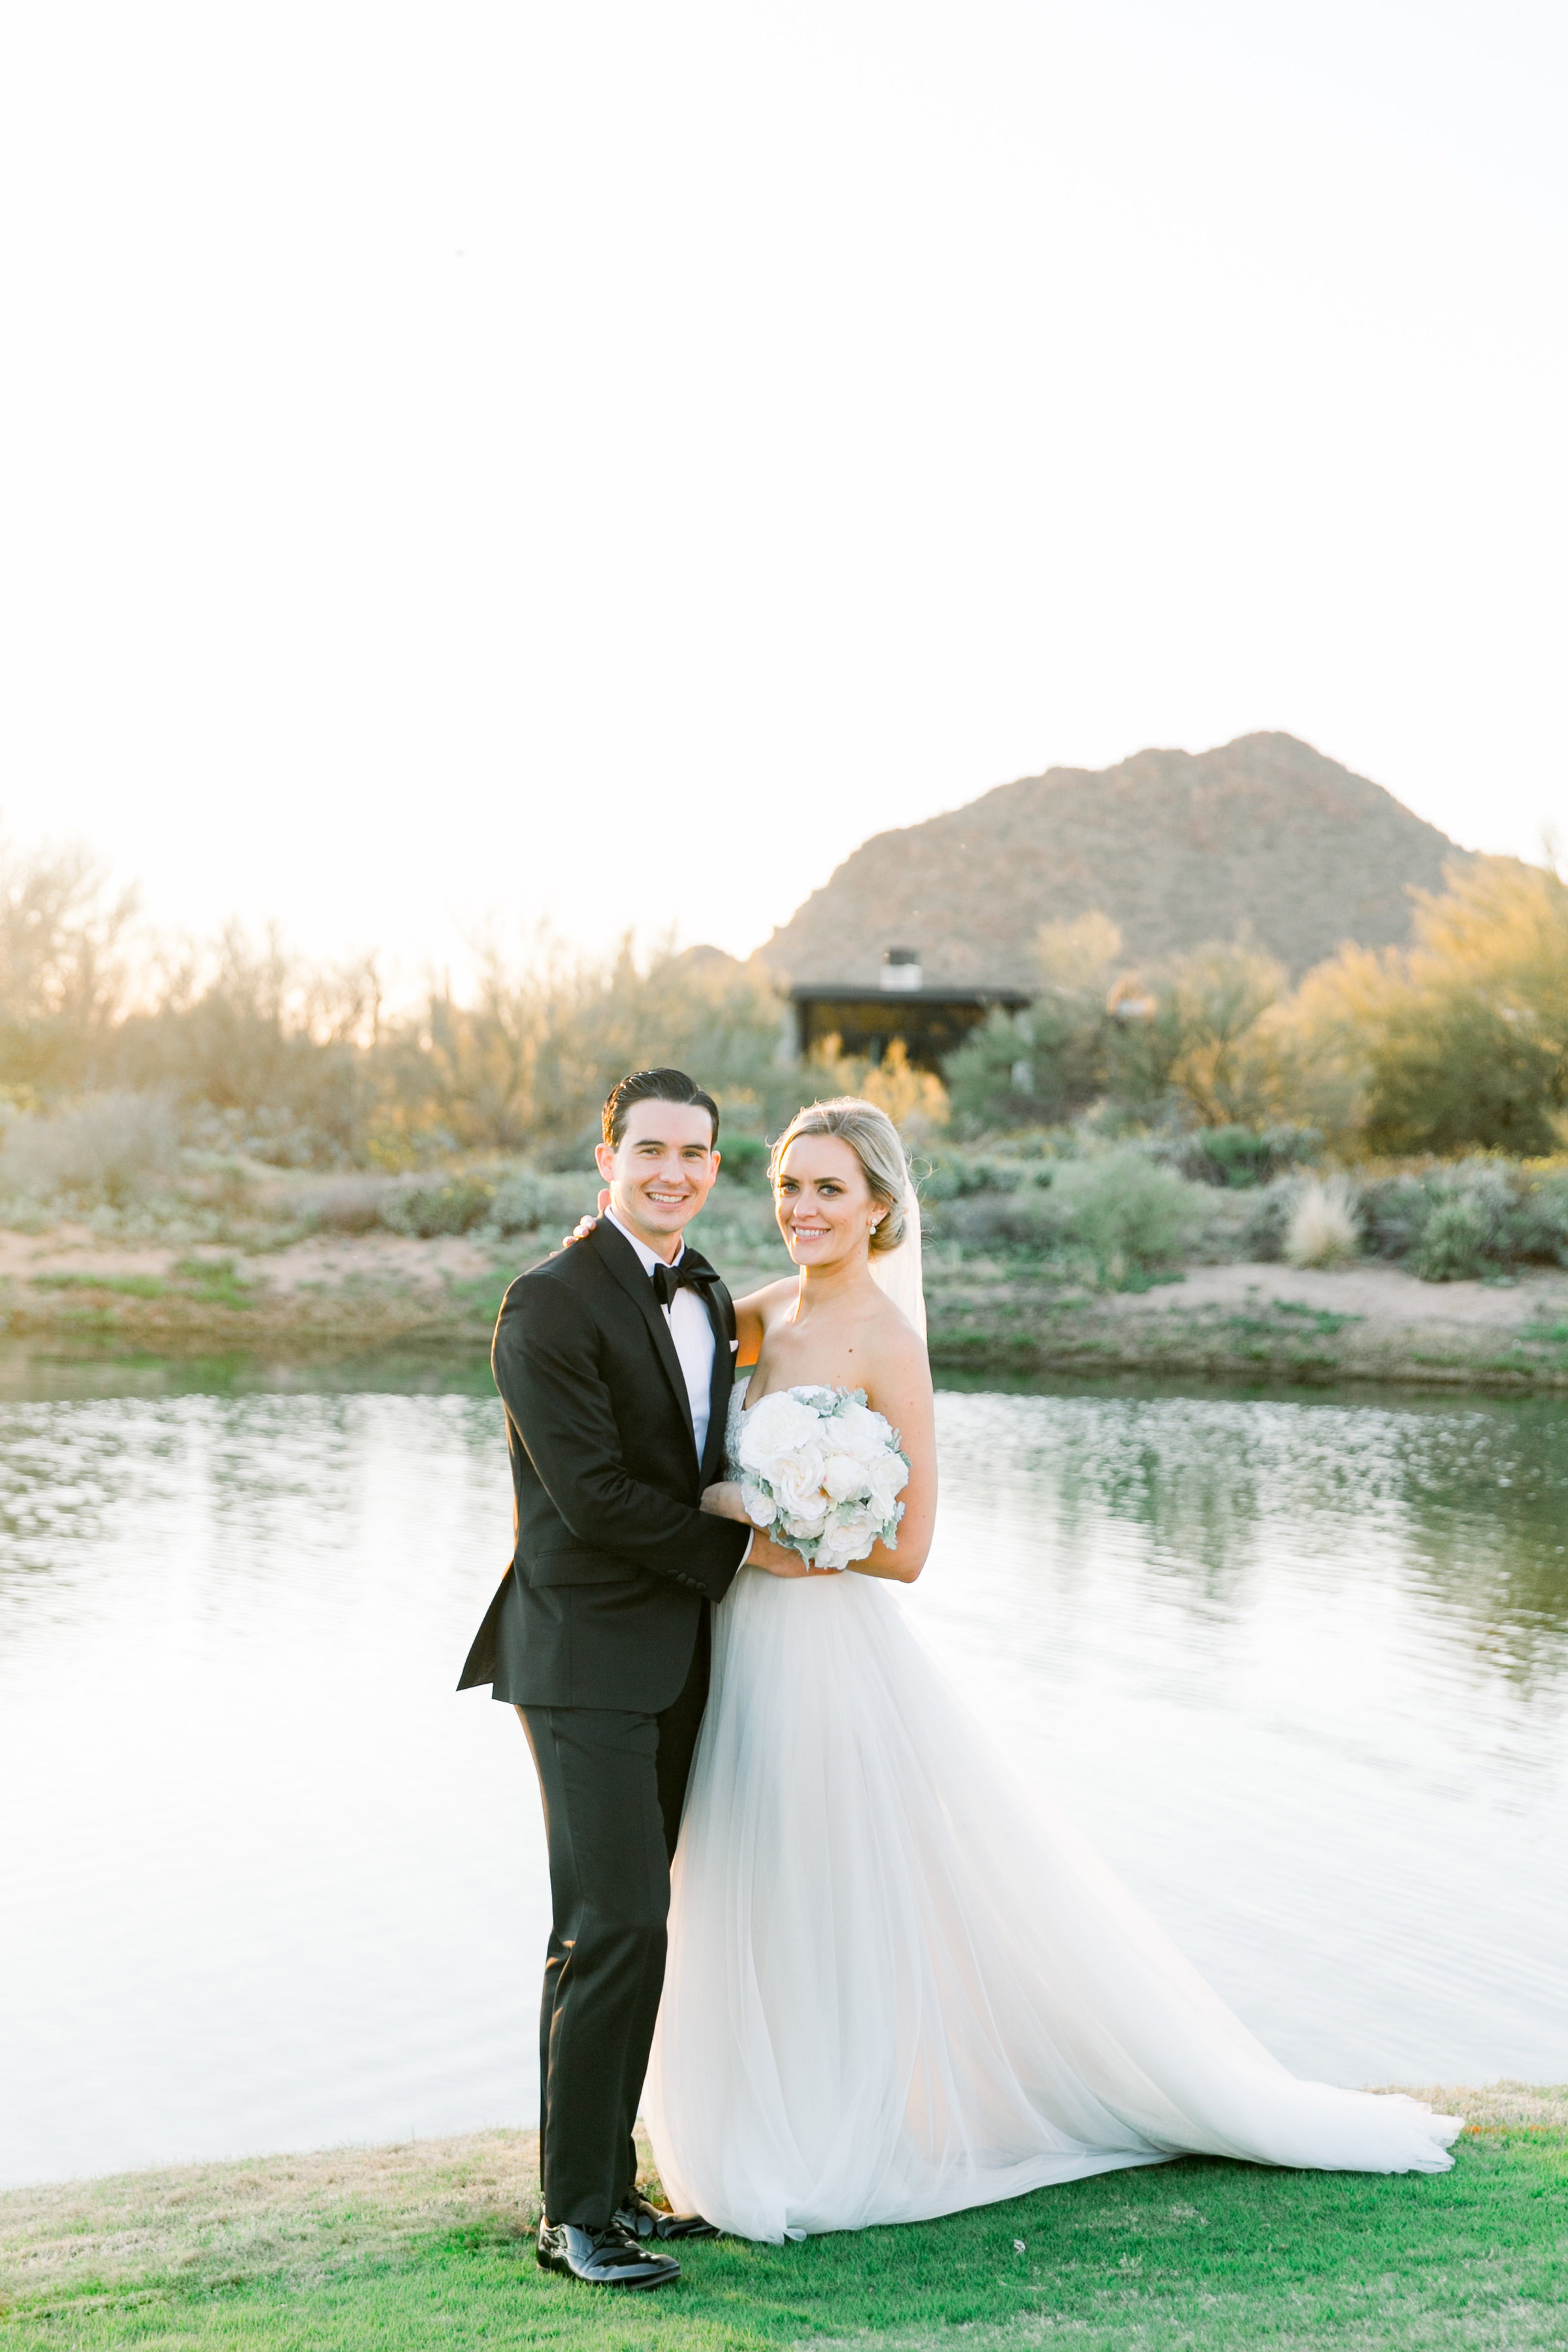 Karlie Colleen Photography - Arizona Wedding at The Troon Scottsdale Country Club - Paige & Shane -704